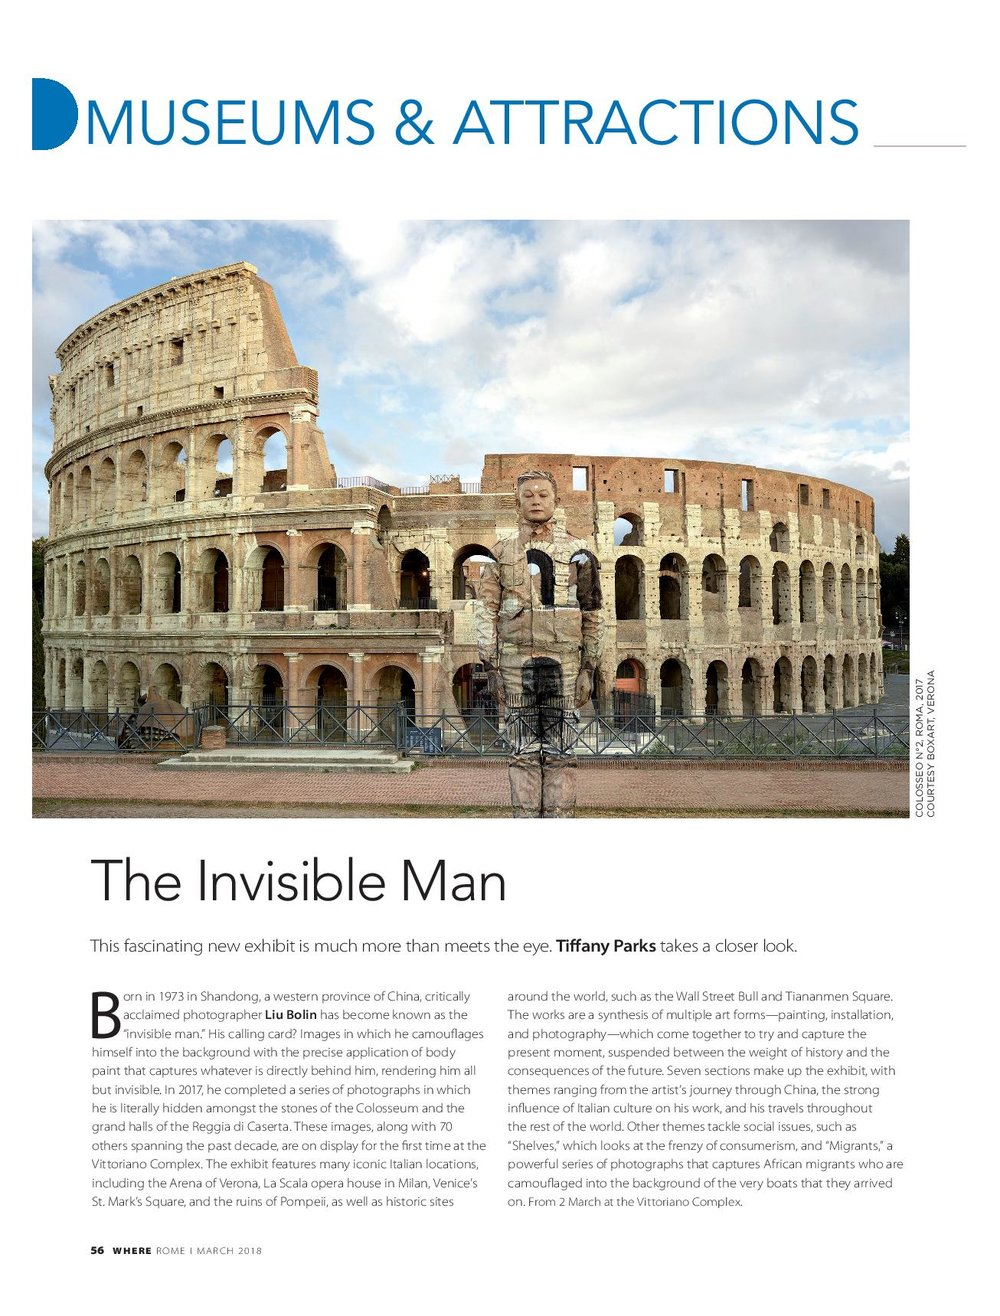 The-Invisible-Man-Where-Rome-March-2018.jpg